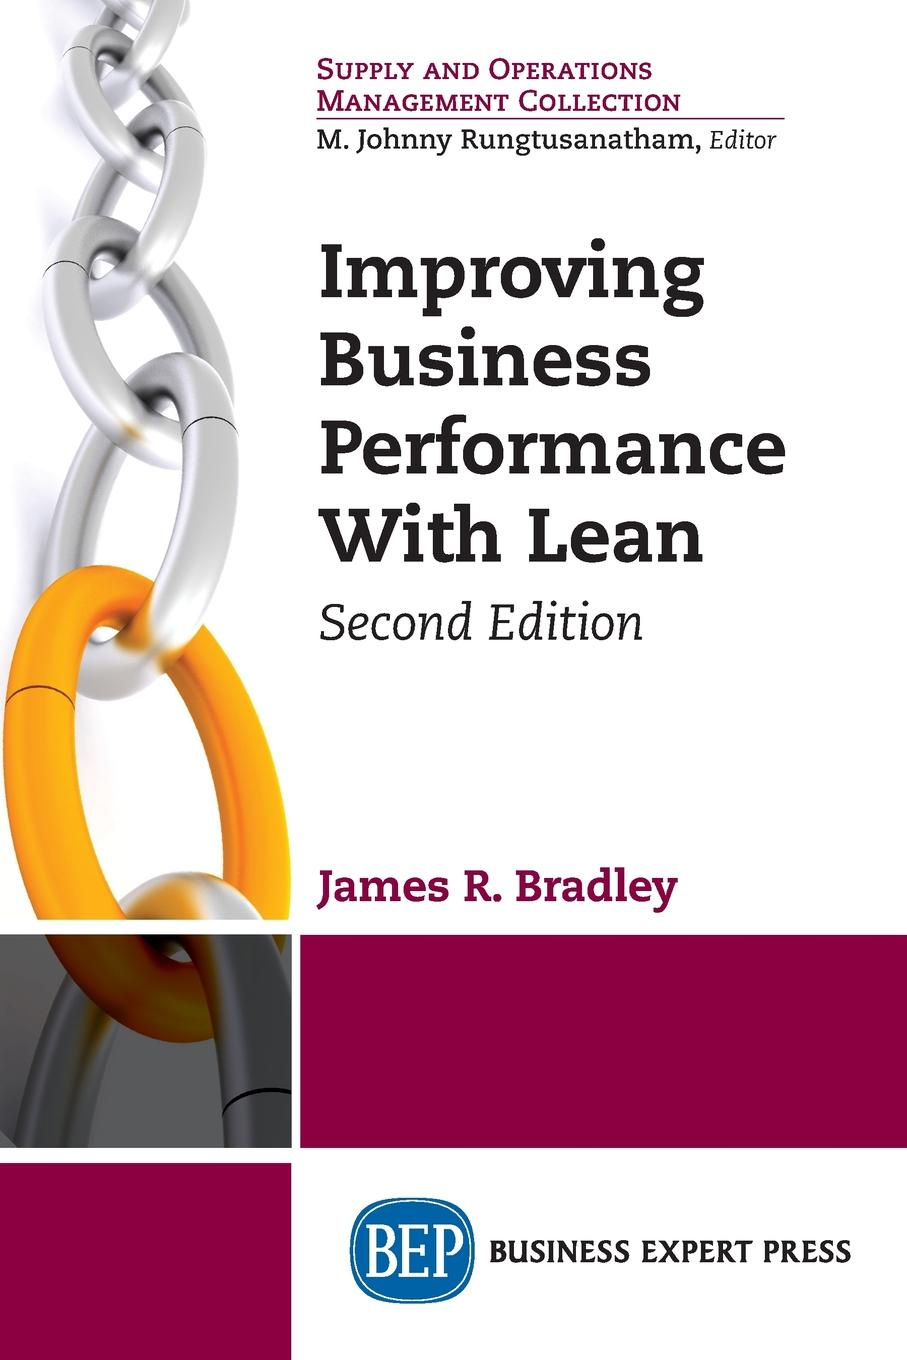 James R. Bradley Improving Business Performance With Lean, Second Edition moseley james l handbook of improving performance in the workplace measurement and evaluation